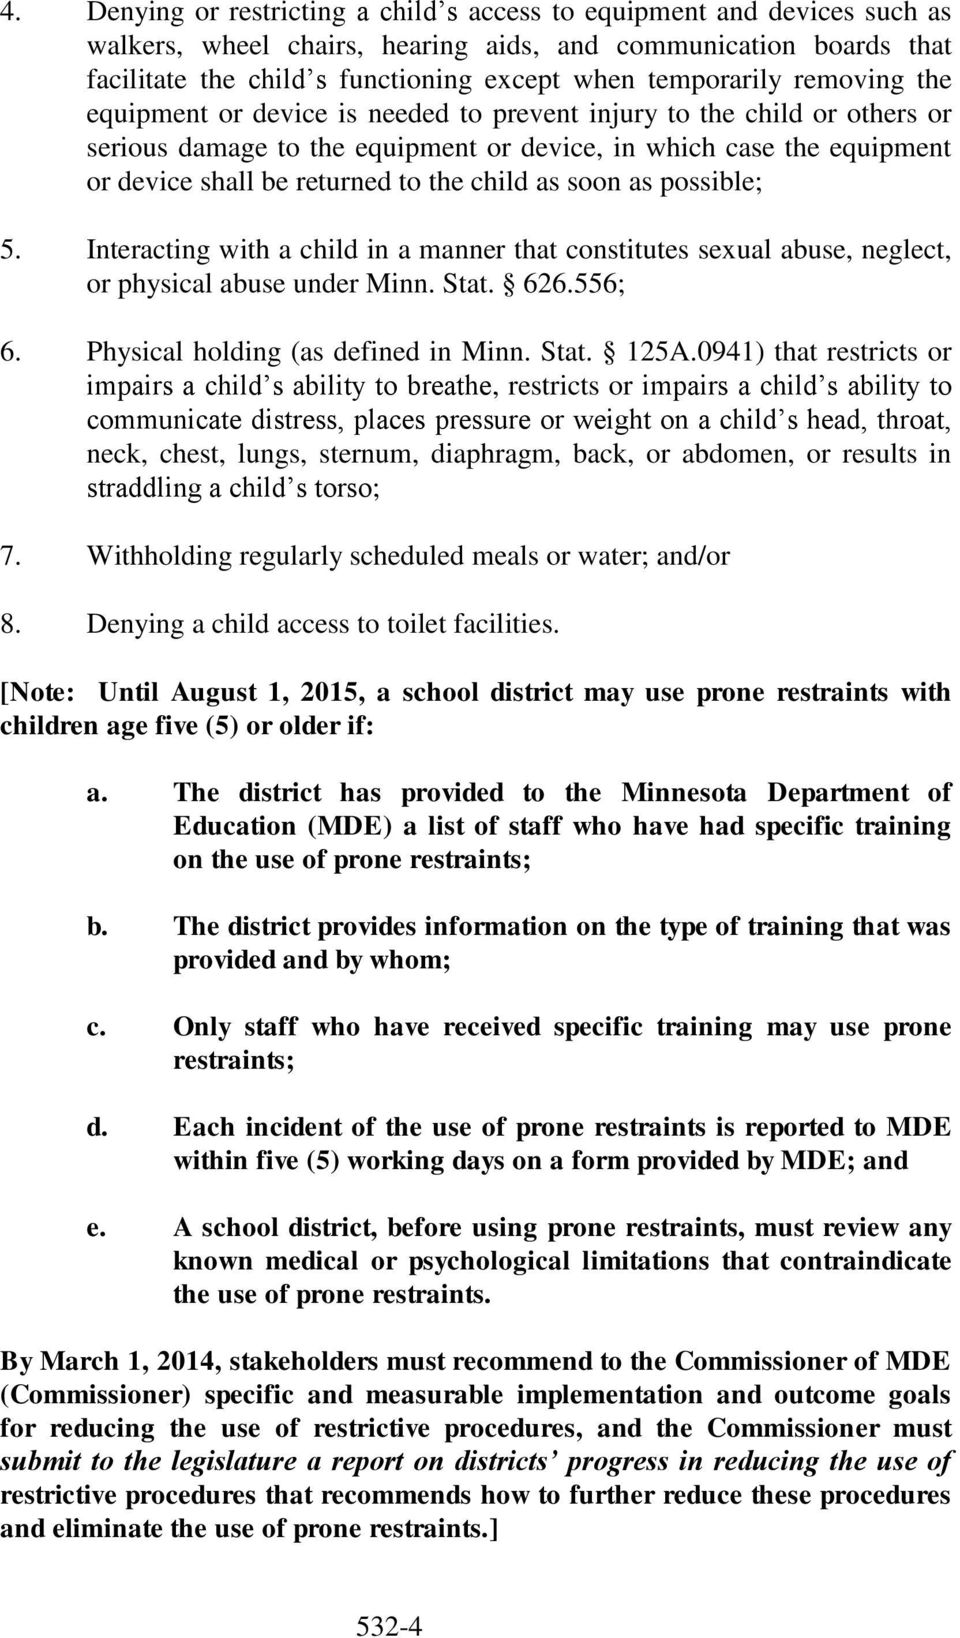 to the child as soon as possible; 5. Interacting with a child in a manner that constitutes sexual abuse, neglect, or physical abuse under Minn. Stat. 626.556; 6. Physical holding (as defined in Minn.